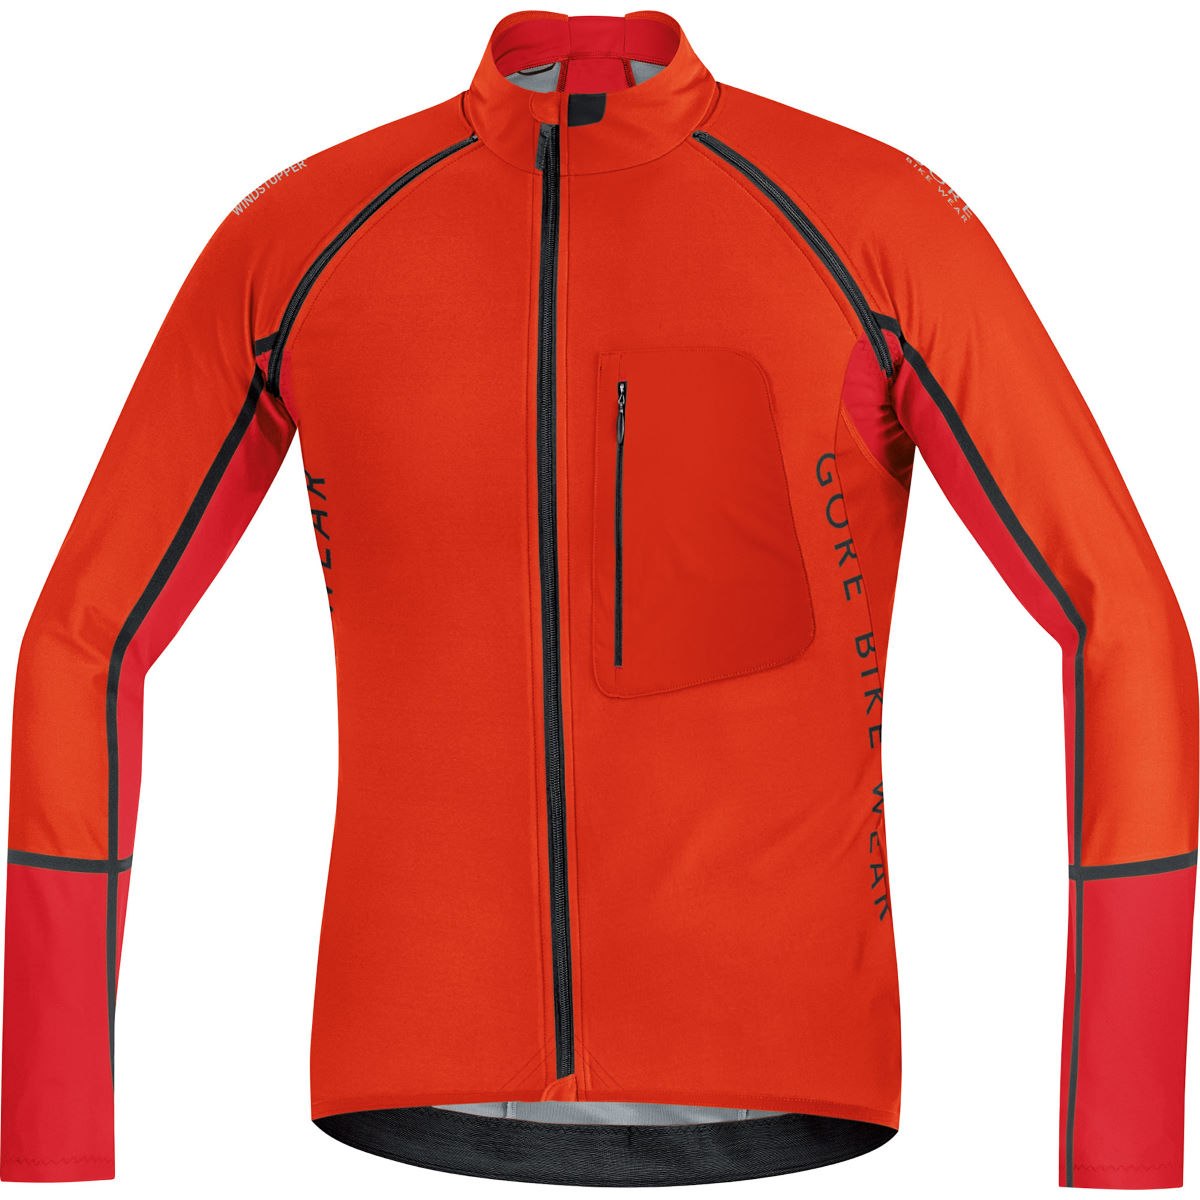 Veste Gore Bike Wear Alp-X Pro Windstopper Softshell (zippée) - XL Orange/Black Coupe-vents vélo